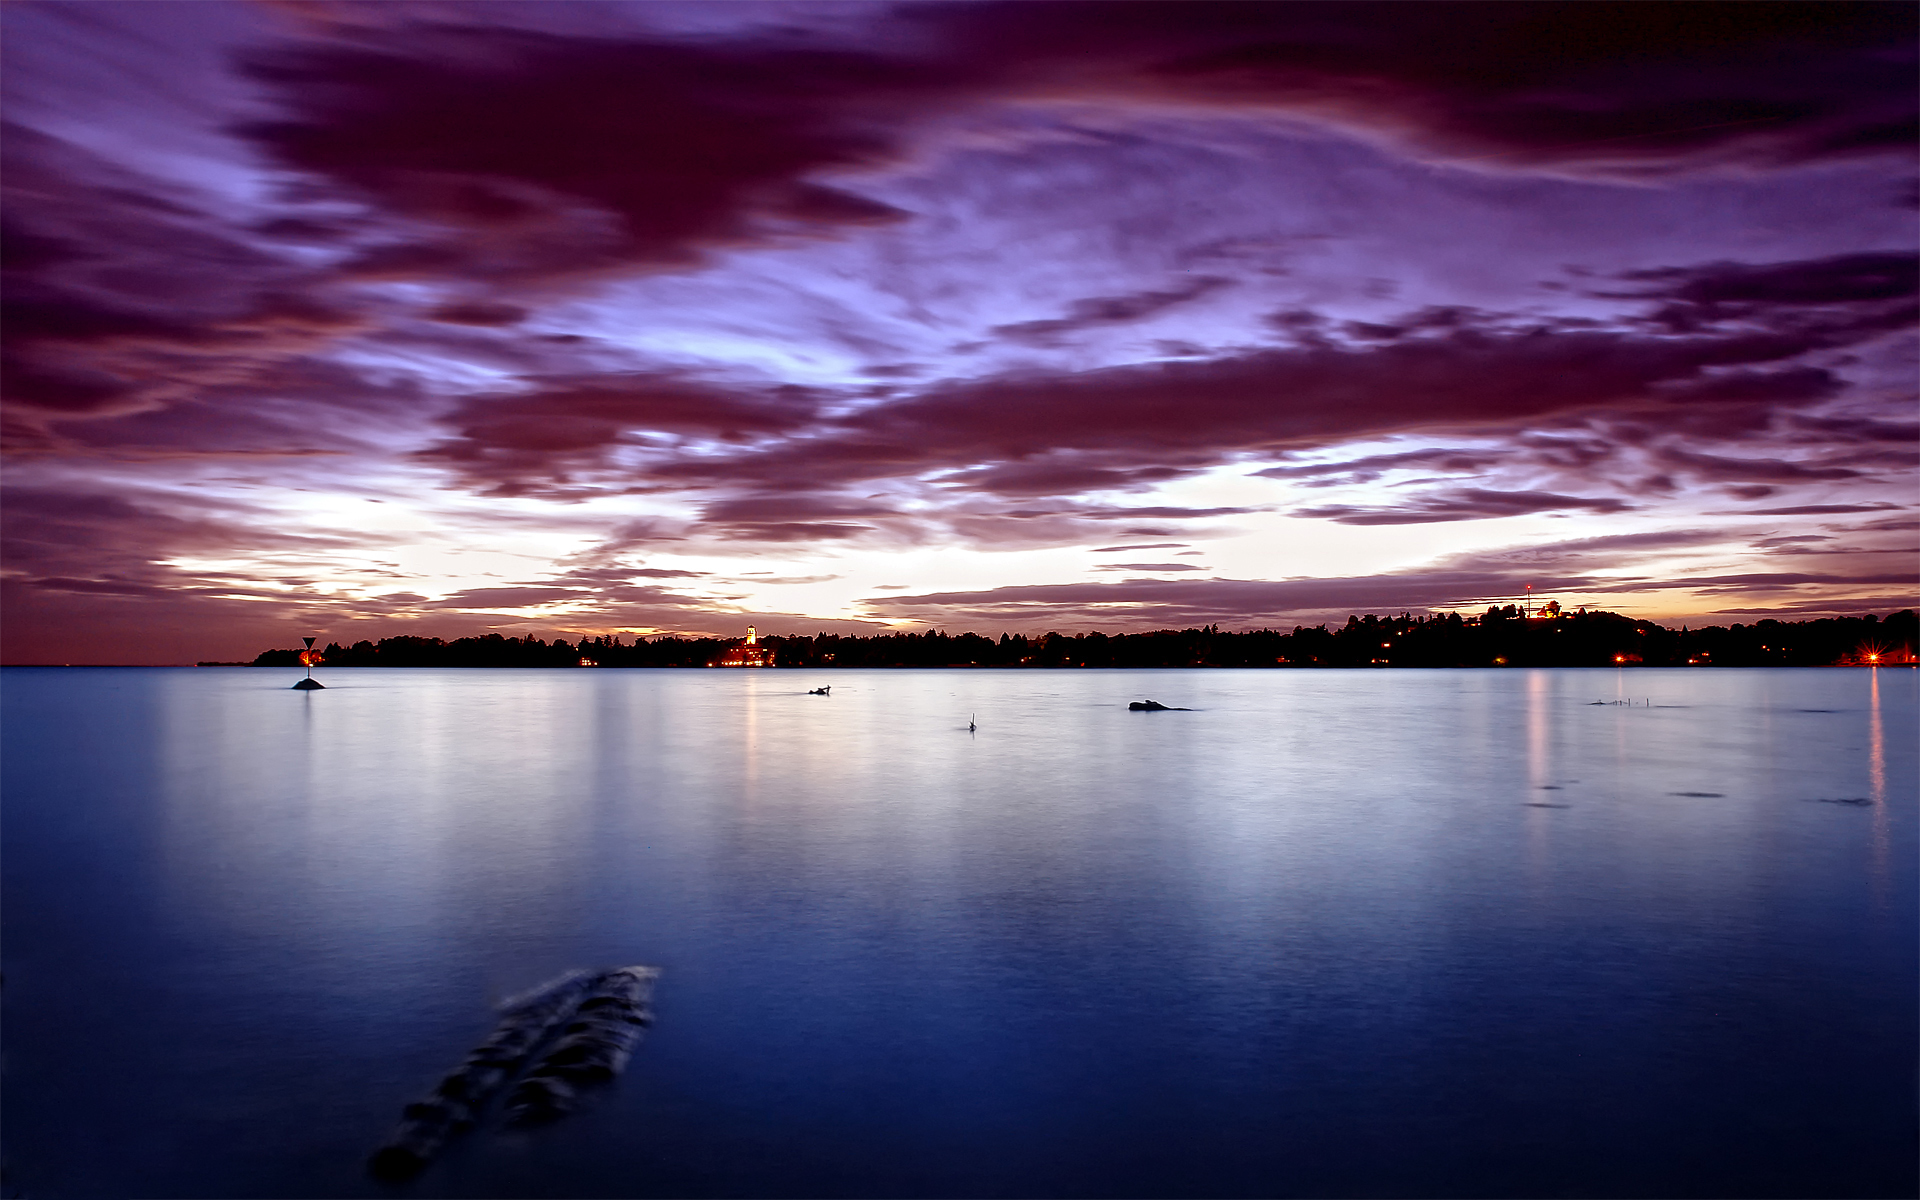 water clouds Landscapes skyscapes HD Wallpaper